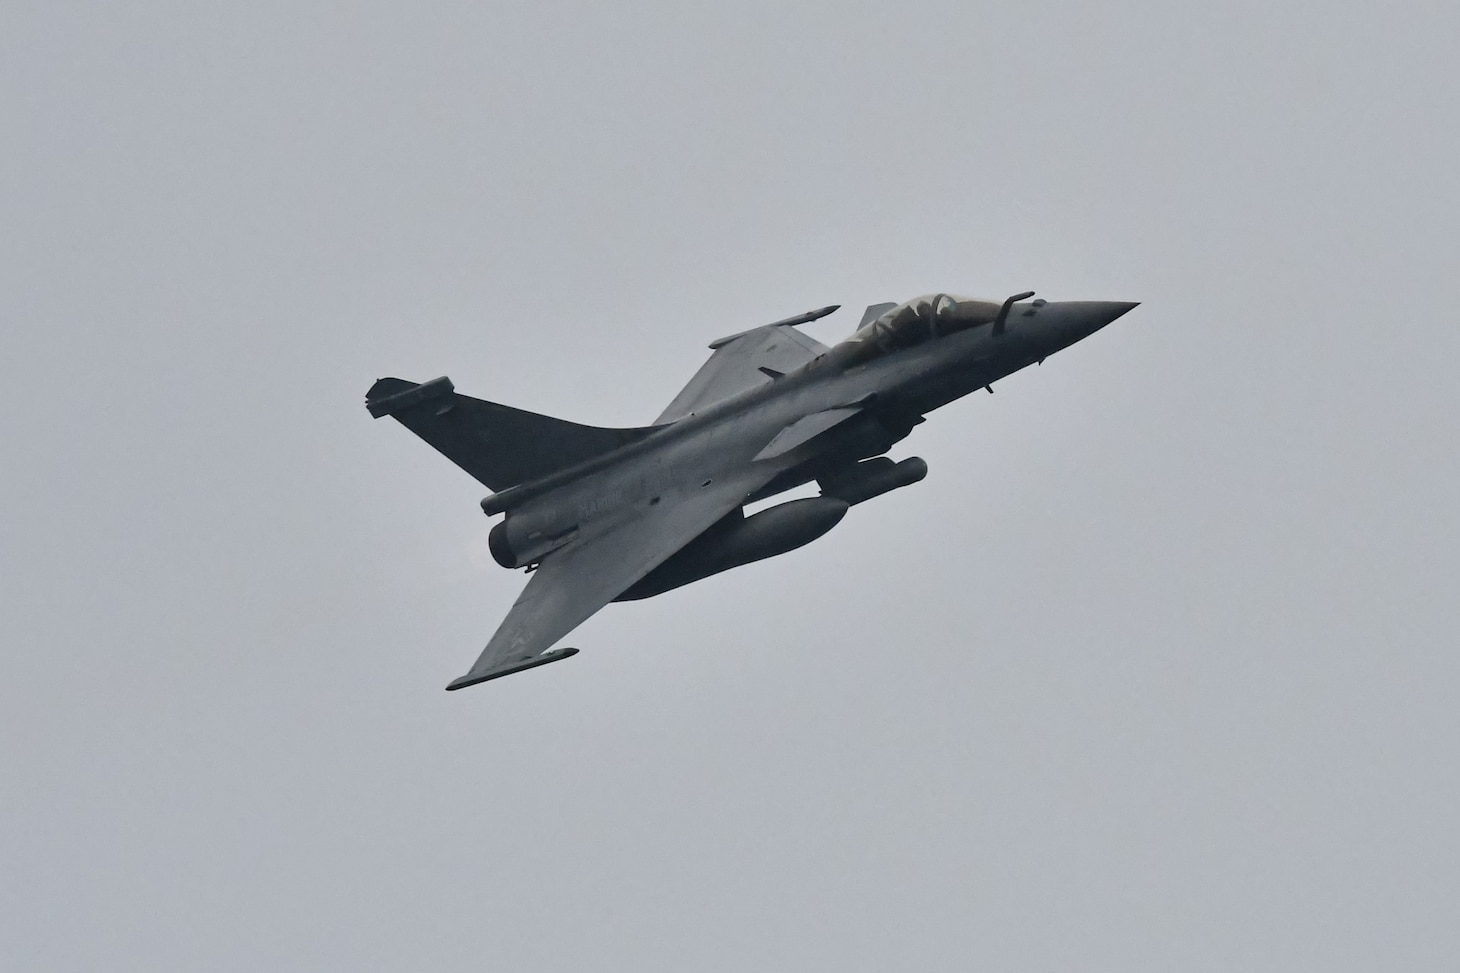 A French Rafale M fighter aircraft flies by the Arleigh Burke-class guided-missile destroyer USS Porter (DDG 78) April 27, 2020 while conducting Air Defense Exercises in the Bay of Biscay